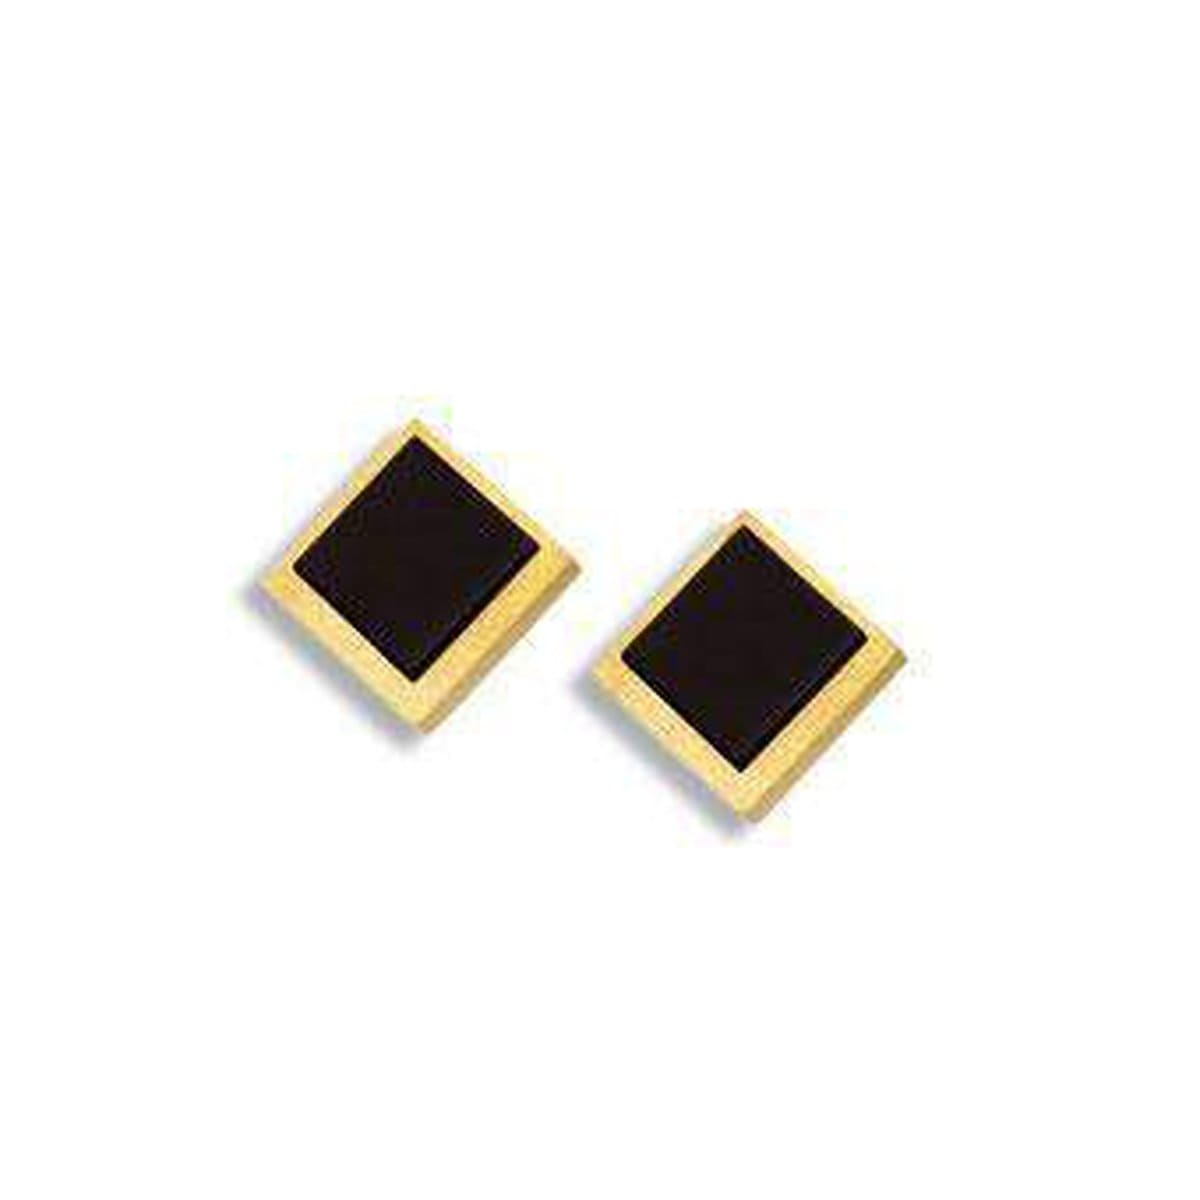 Tabos Onyx Pin Earrings - 19521896-Bernd Wolf-Renee Taylor Gallery